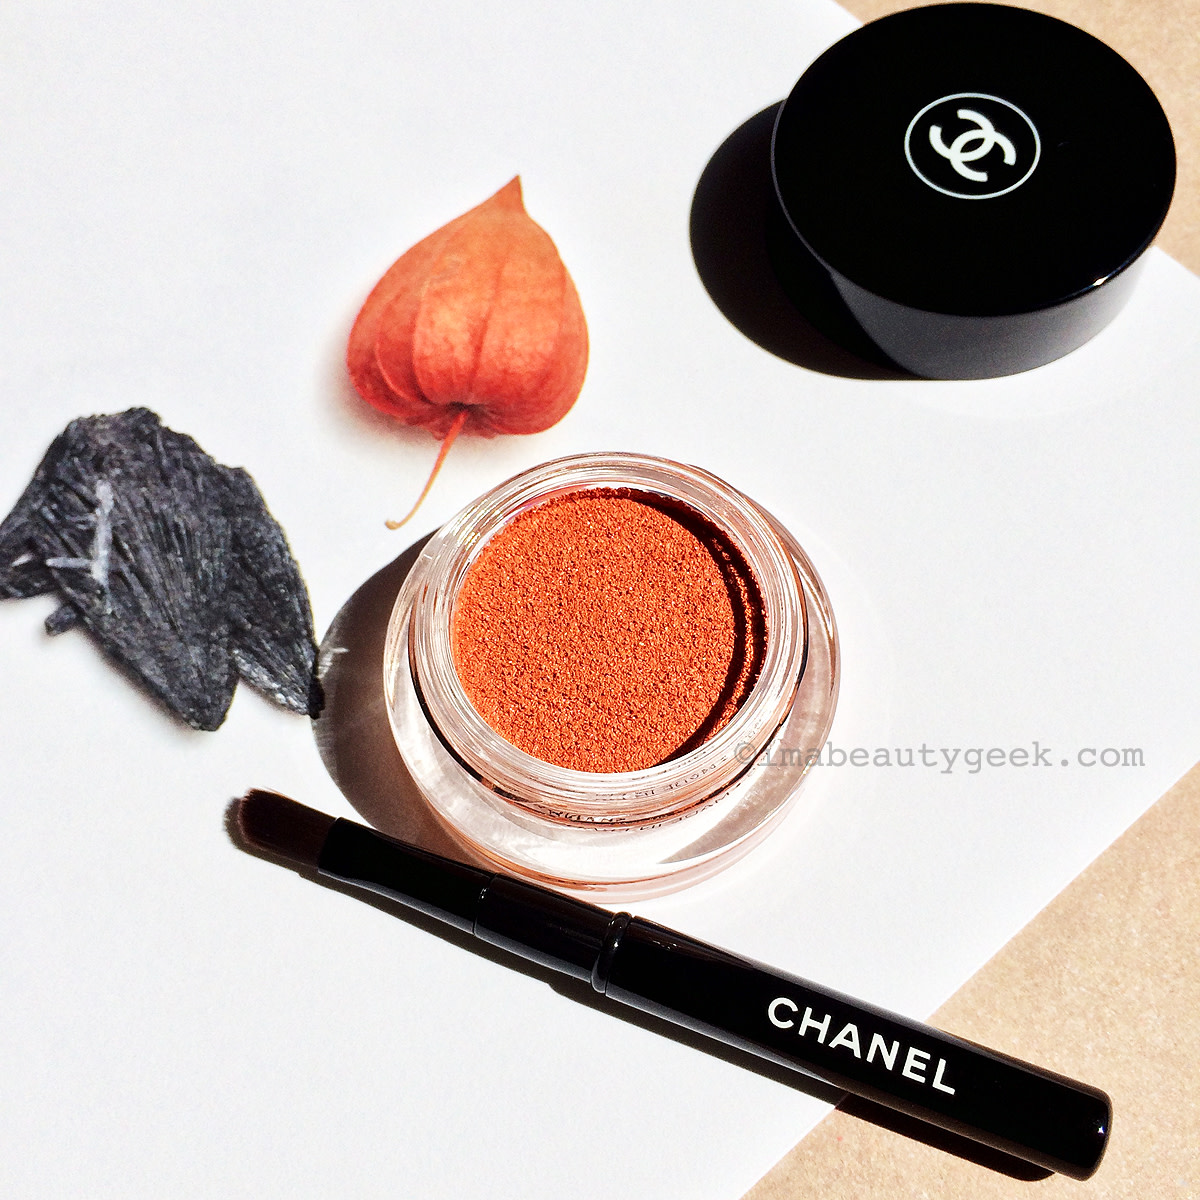 Chanel Fall 2015 Makeup Les Automnales Collection_Illusion d'Ombre Rouge-Gorge